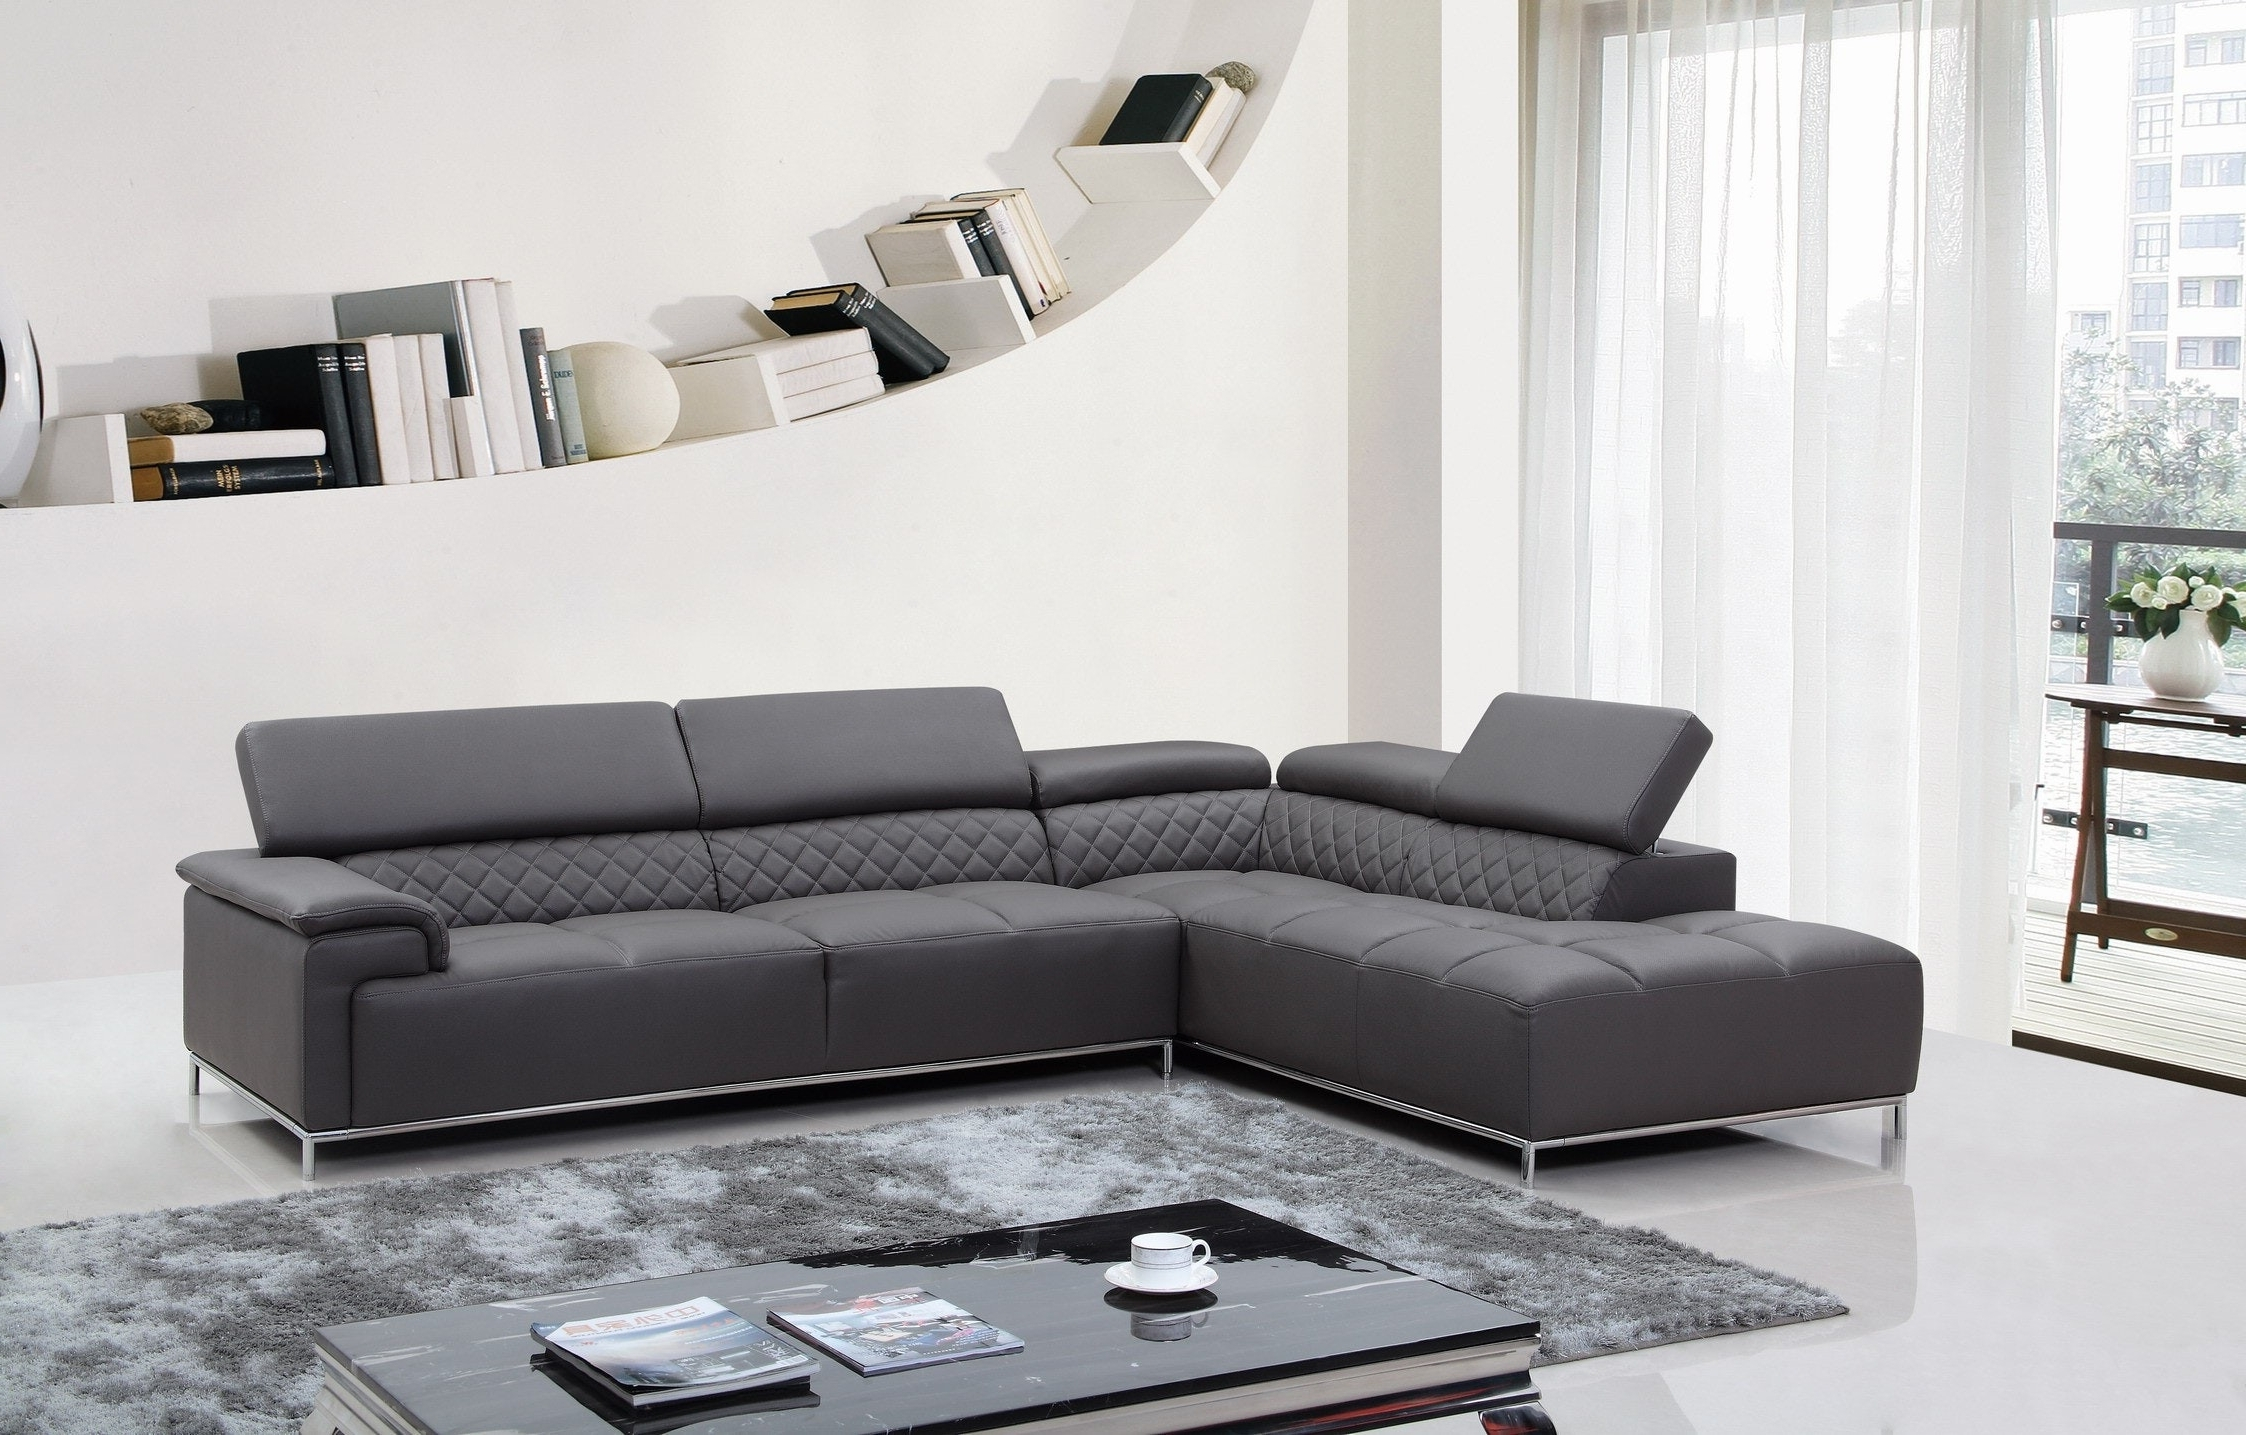 Popular Sectional Sofas Under 600 Regarding Furniture : Awesome Cheap Sectional Sofas Under 300 Best Of (View 10 of 20)